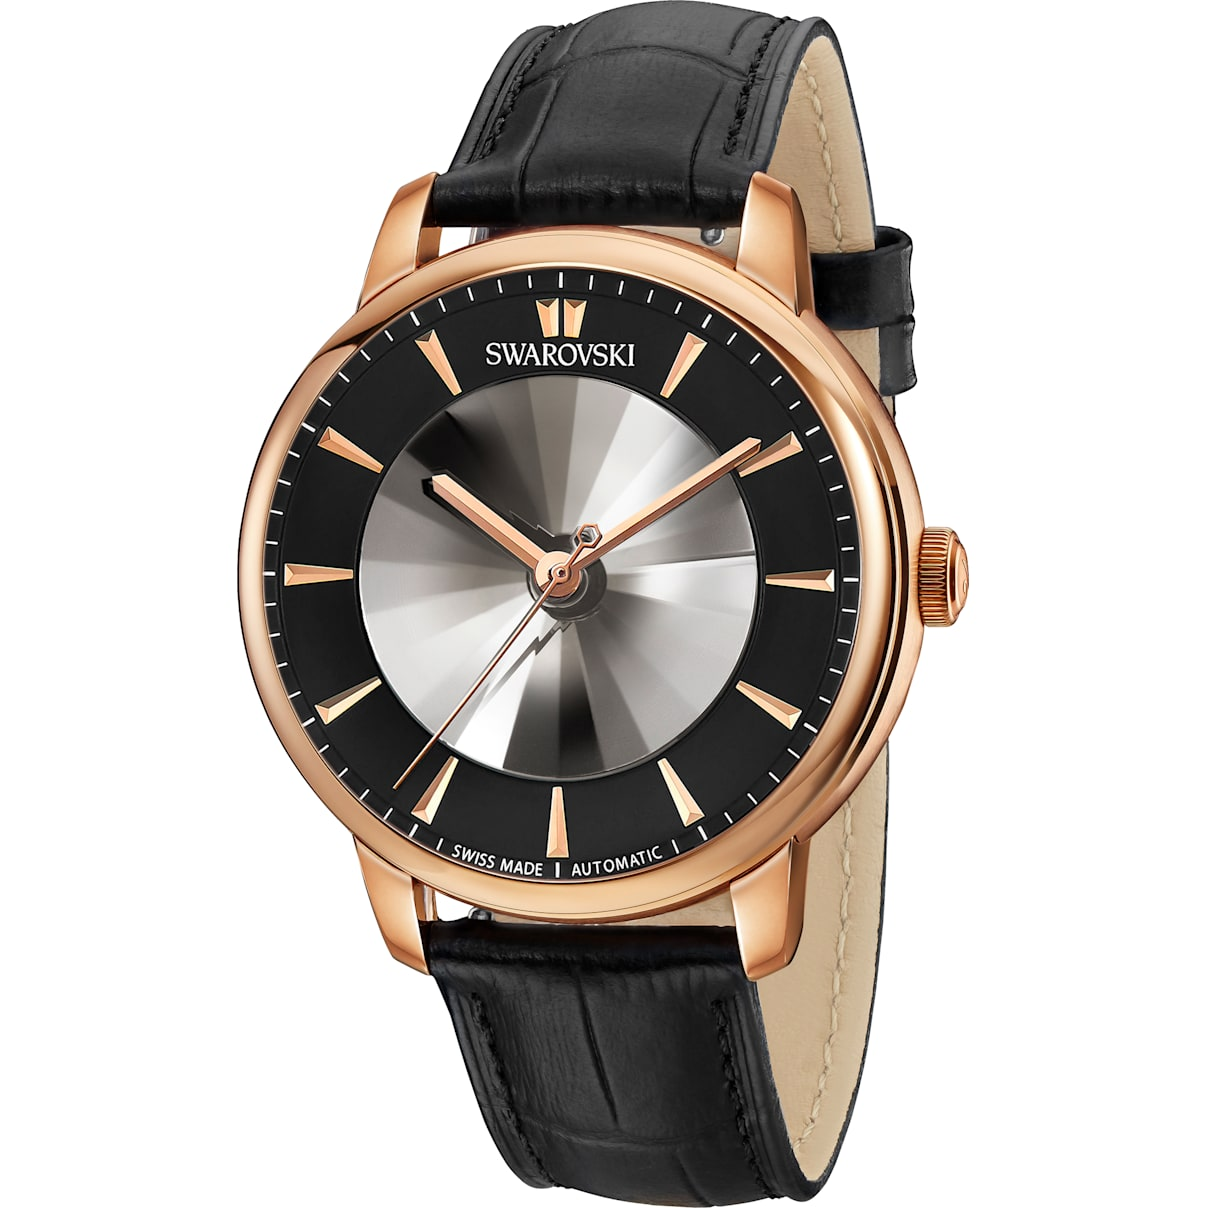 Swarovski Atlantis Limited Edition Automatic Men's Watch, Leather strap, Black, Rose-gold tone PVD